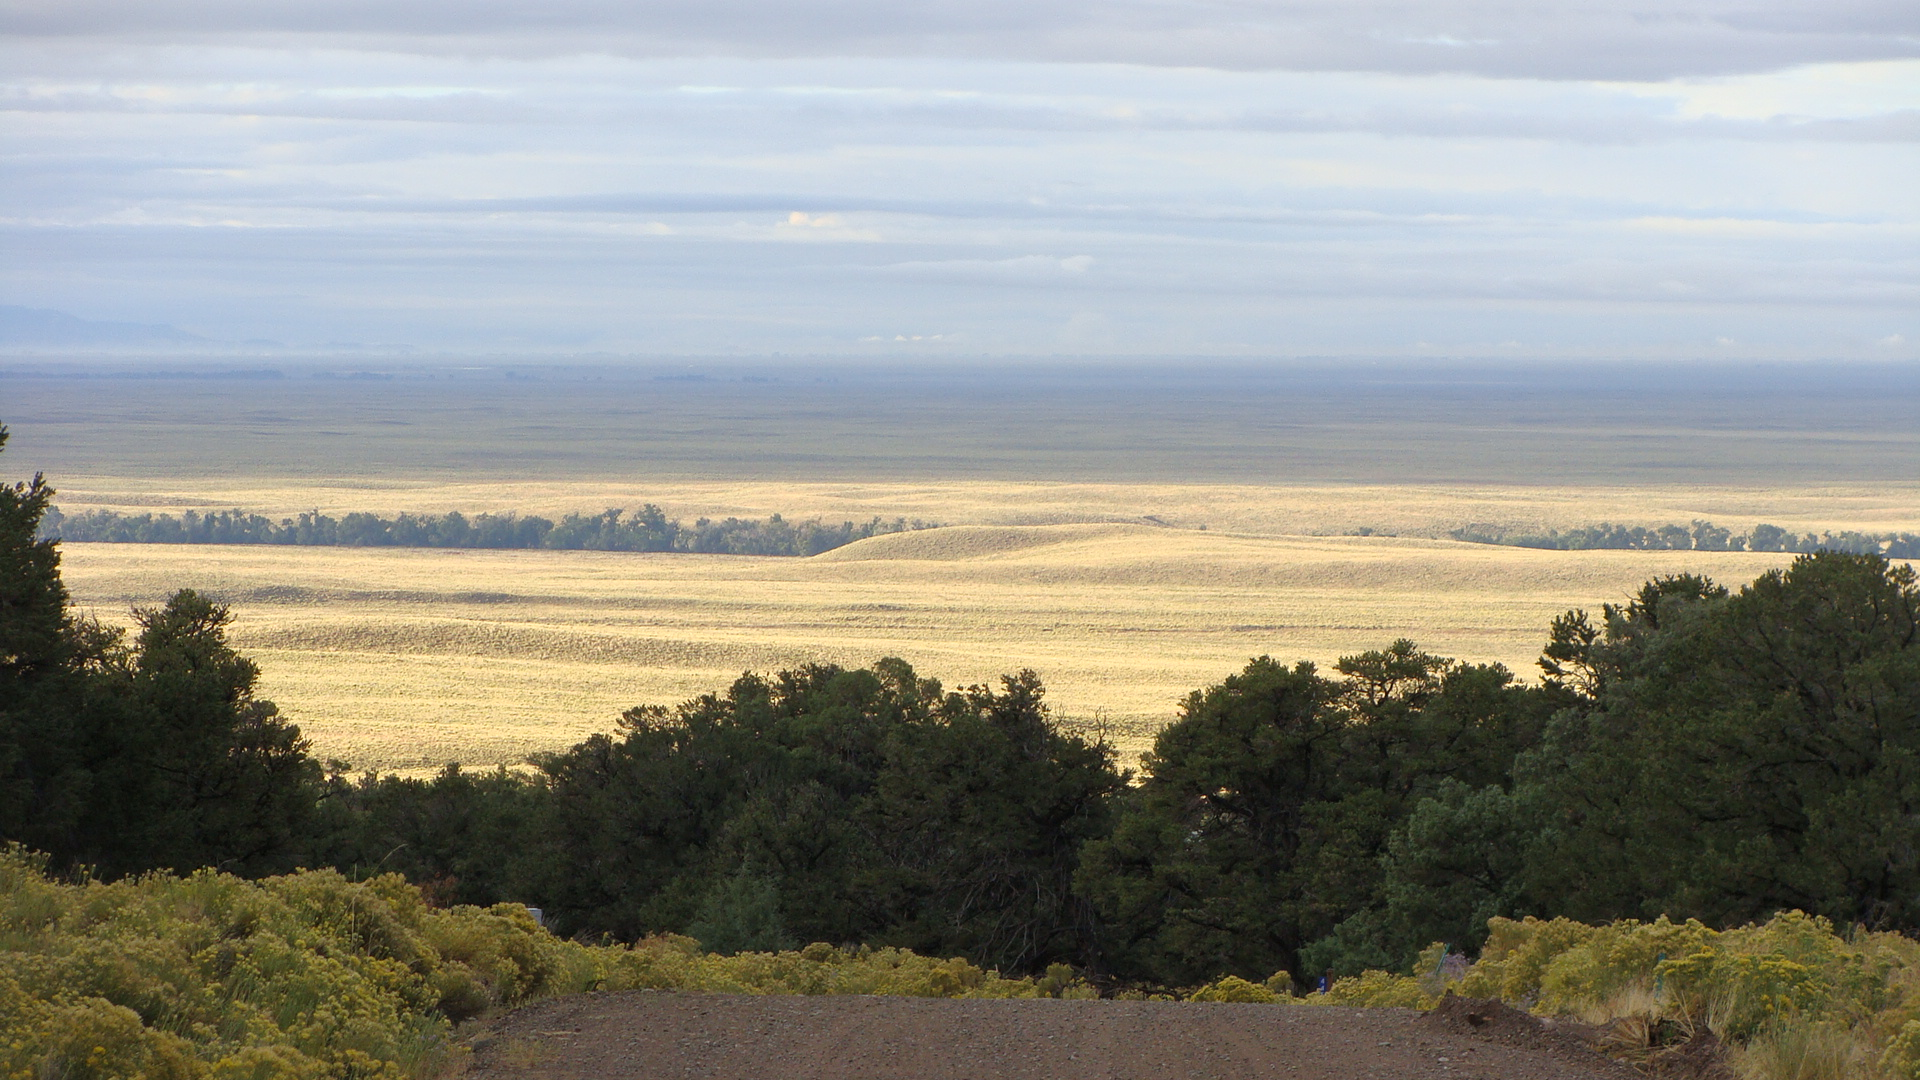 In awe of the beauty and vastness of the San Luis Valley - my view when I'm not looking at the mountains. More gratitude!